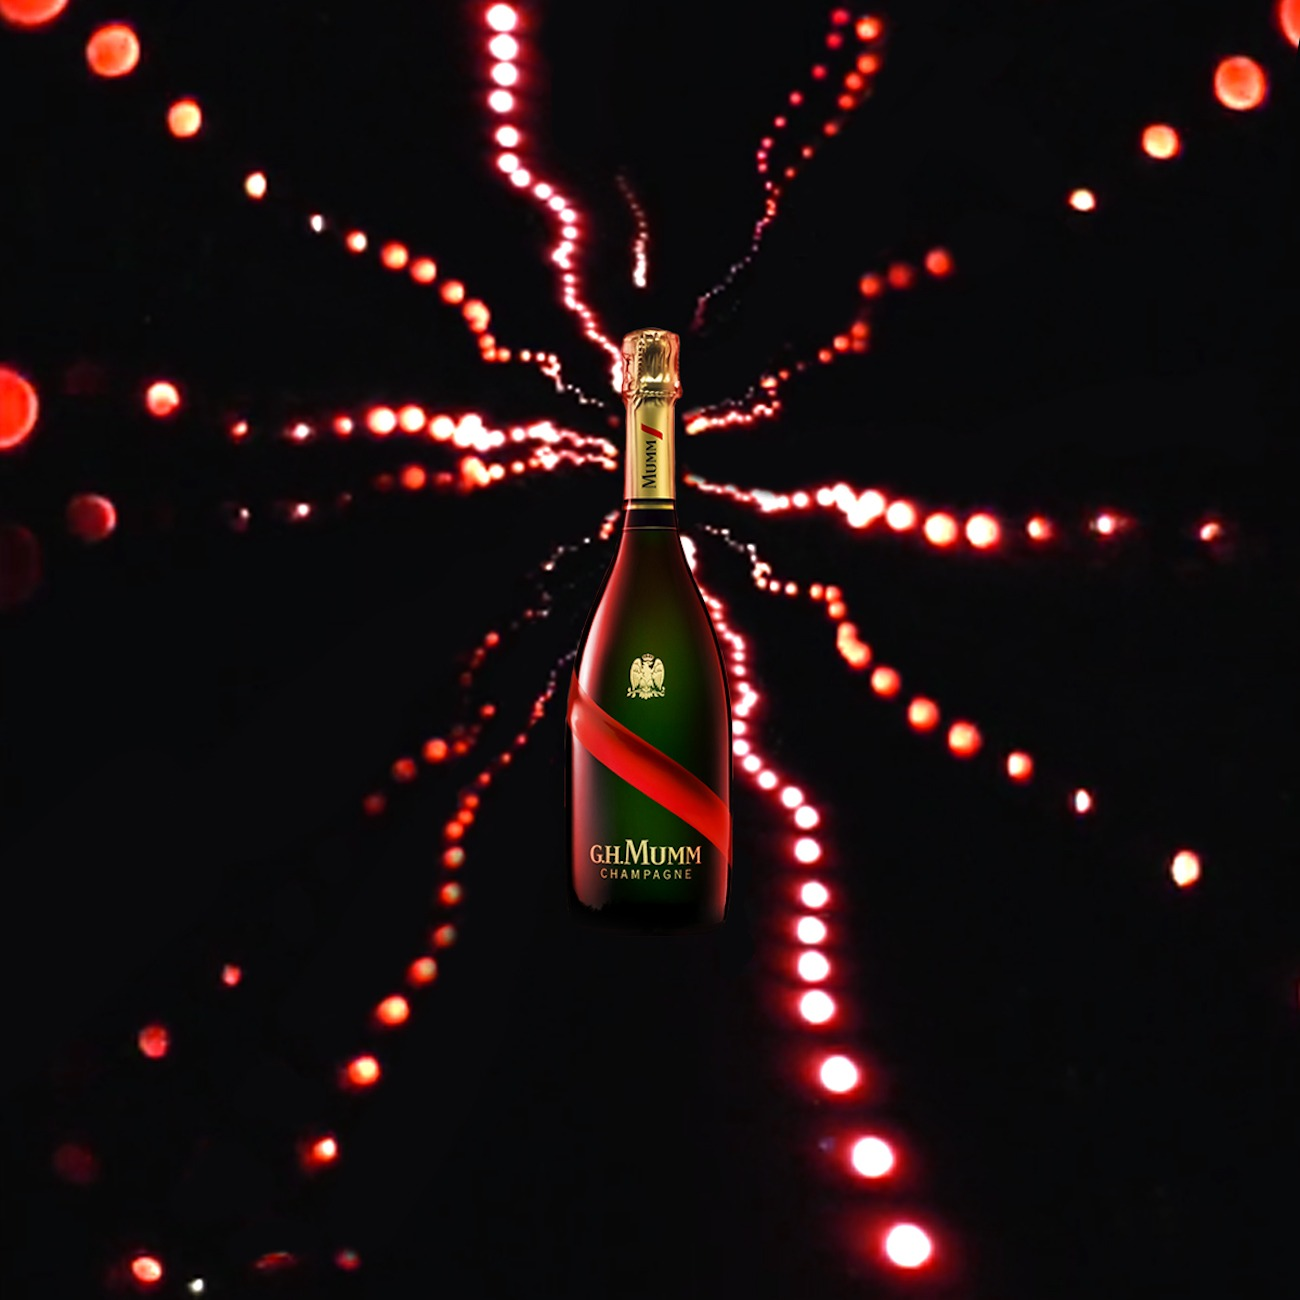 Mumm Grand Cordon - Antoine Peltier x Braaxe - Direction artistique Electric